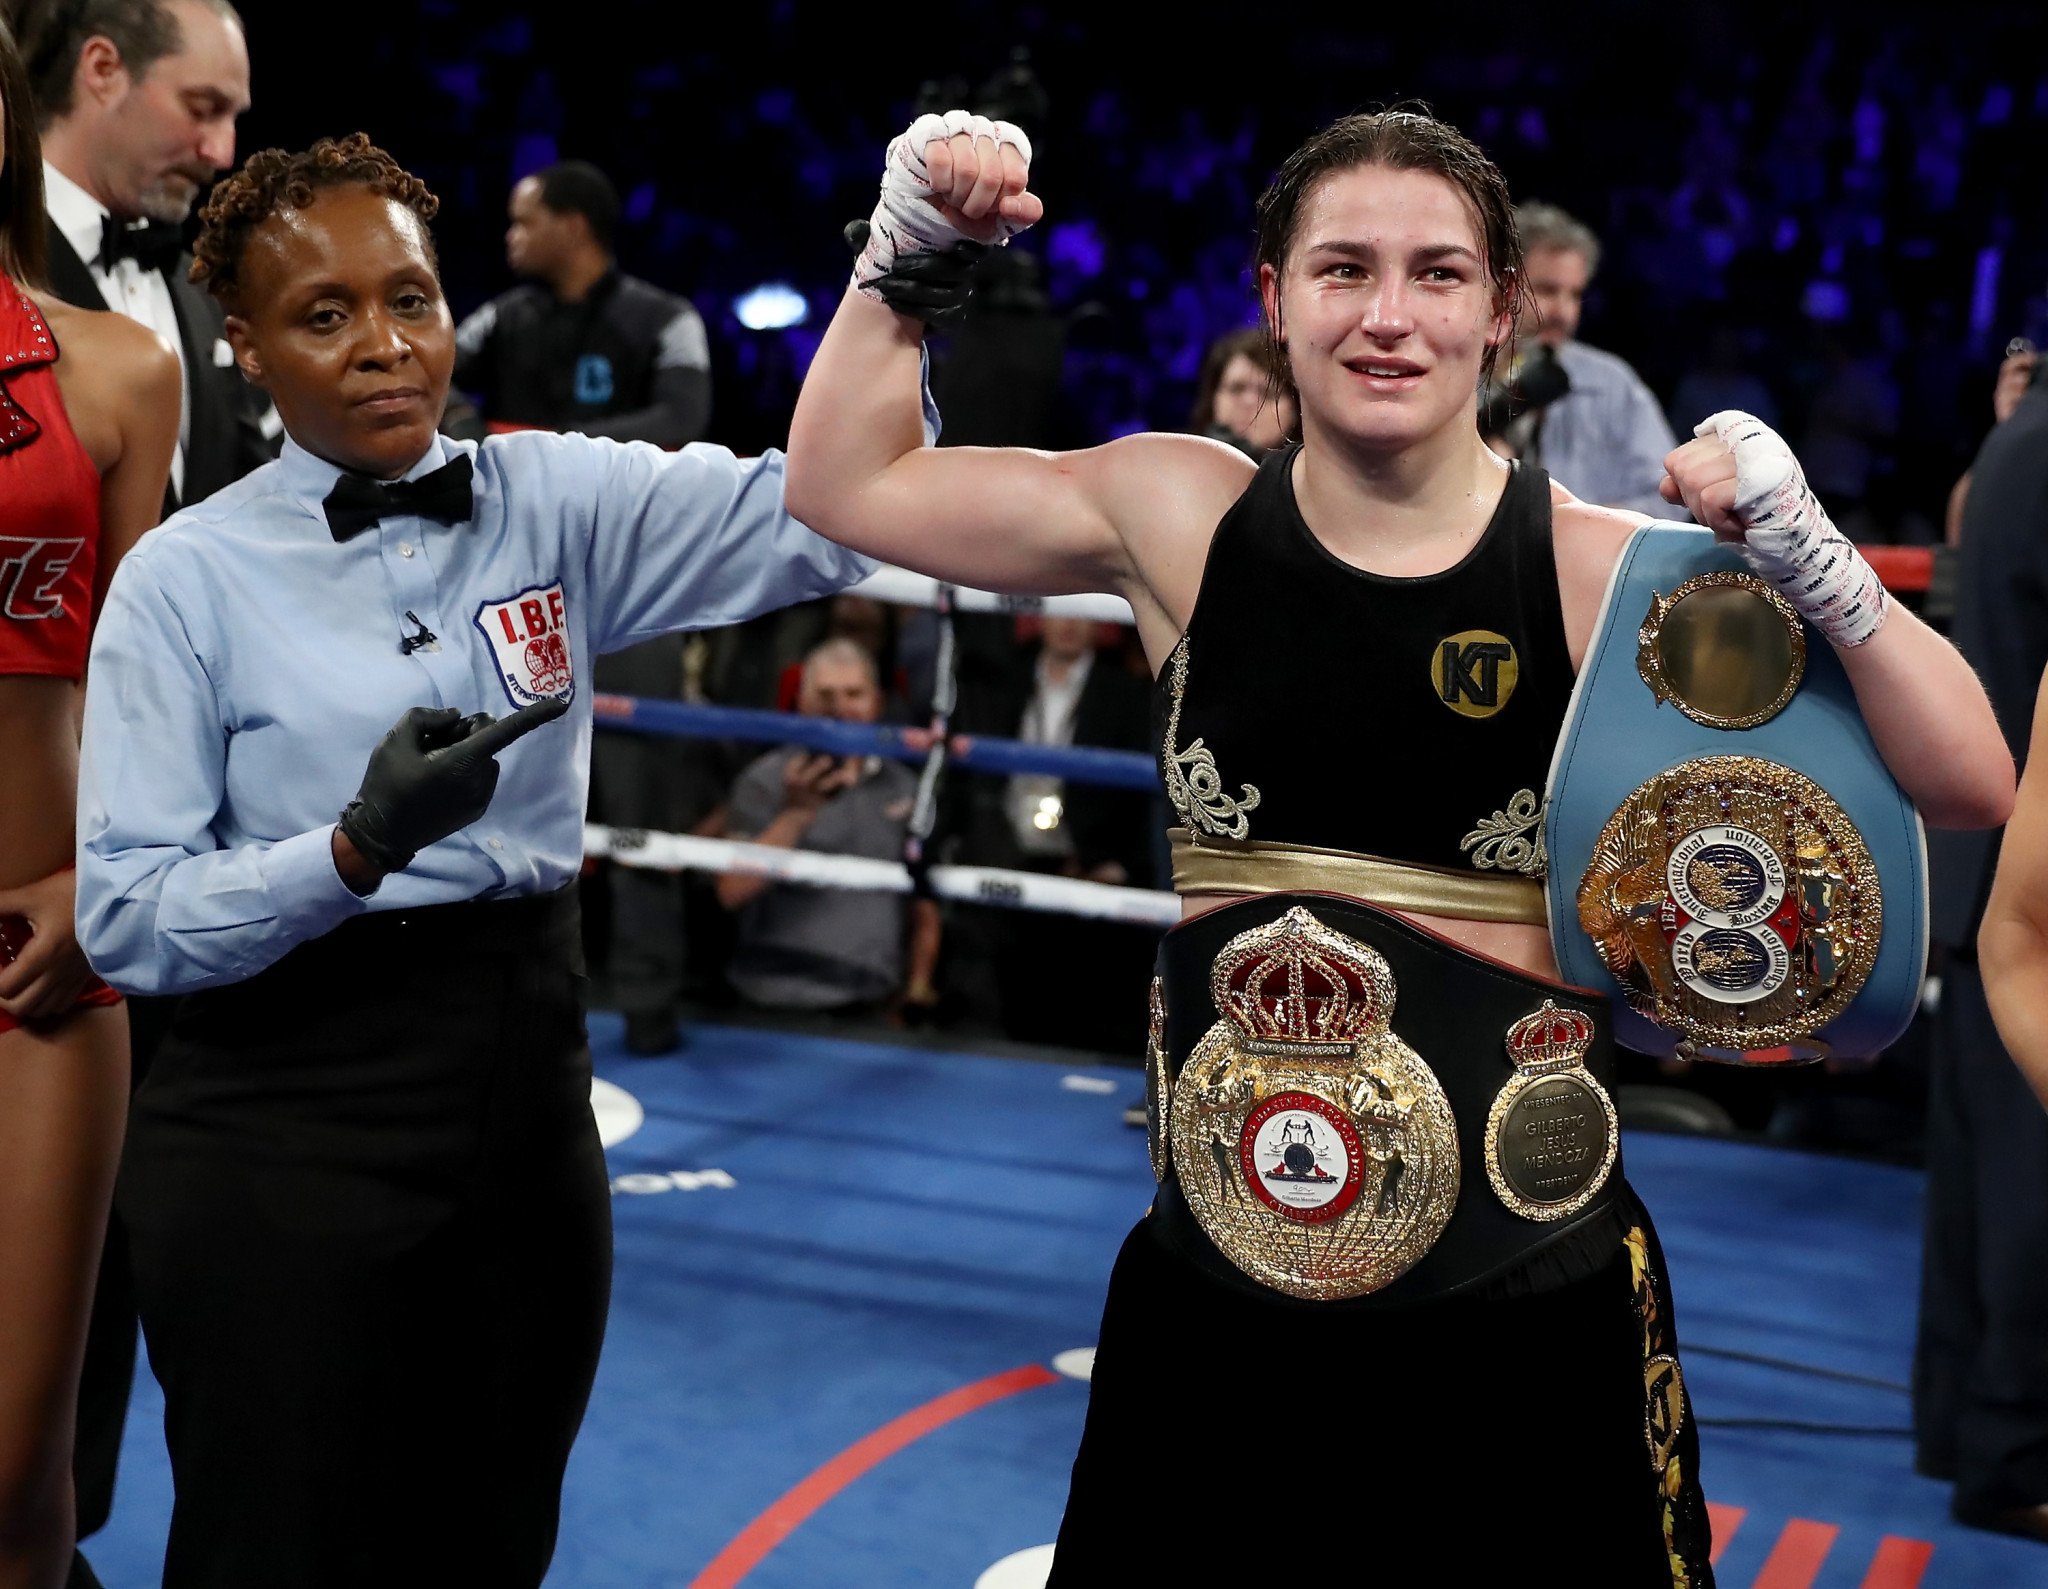 The likes of Katie Taylor have flown the flag for women's boxing ©Getty Images